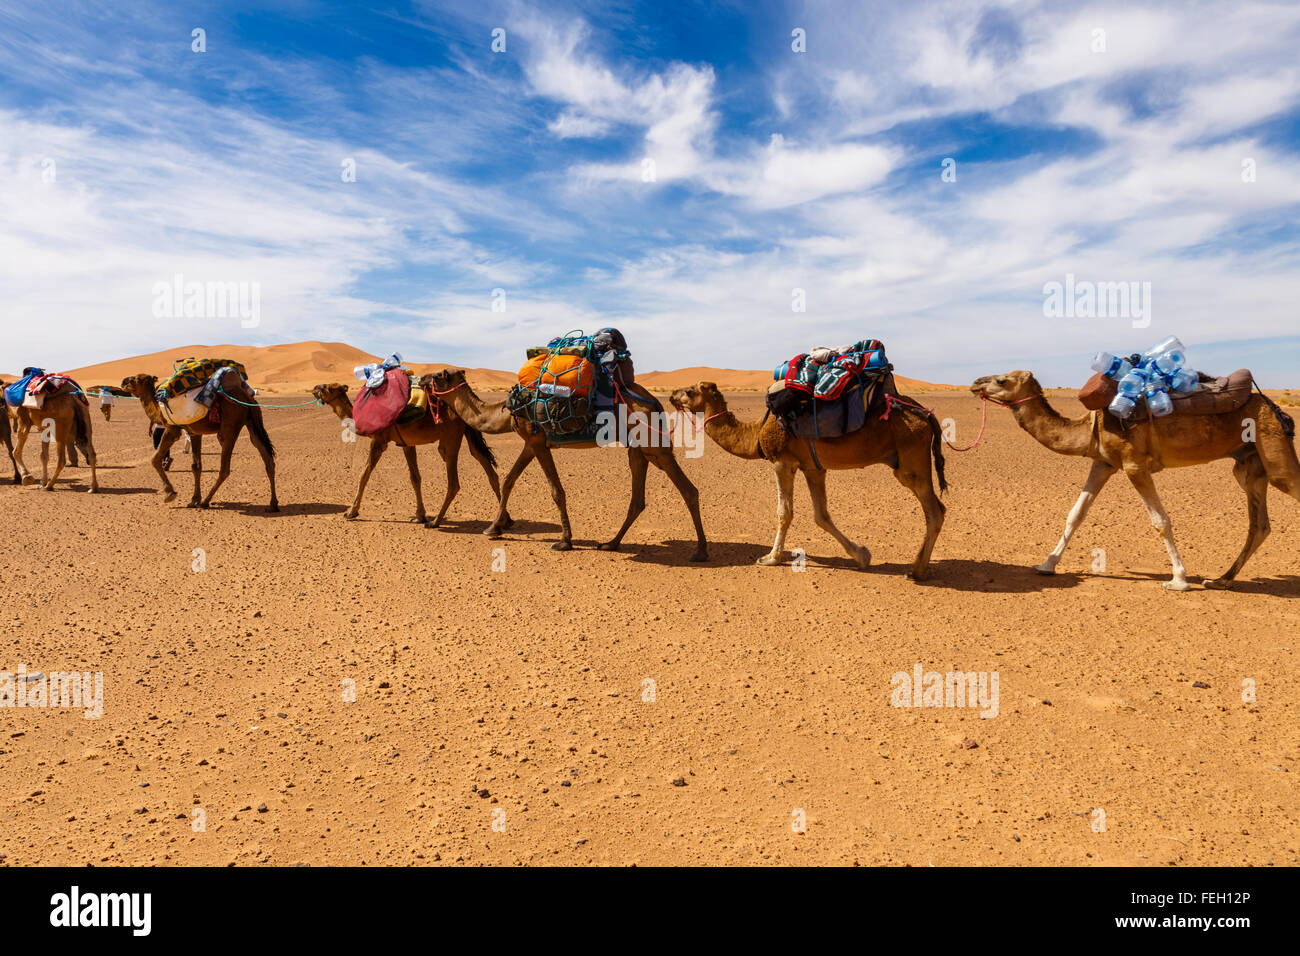 trade caravan in the desert - Stock Image